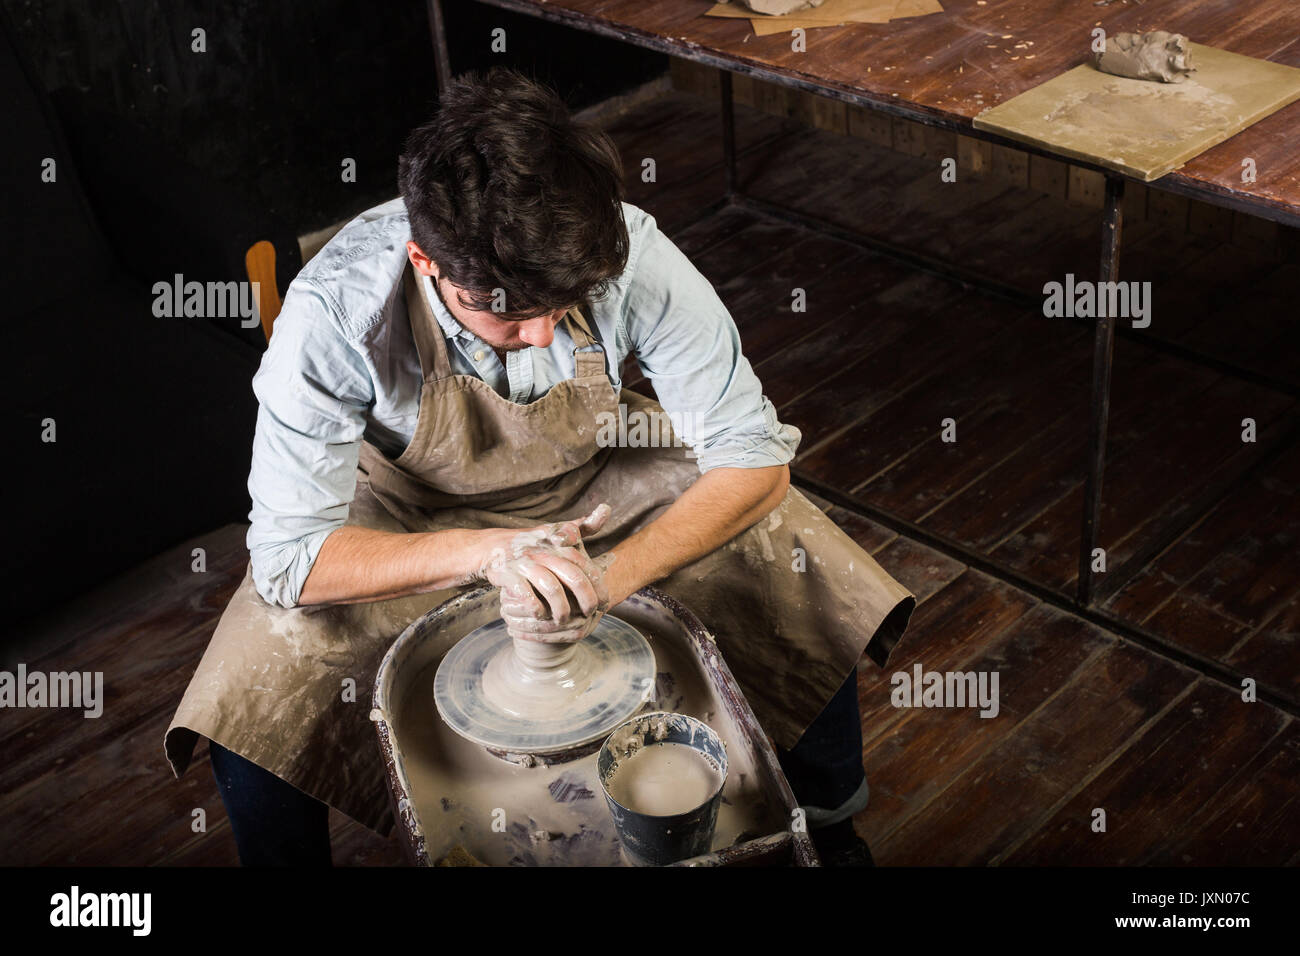 pottery, workshop, ceramics art concept - master forms the clay on Potter's wheel with hands, man bent over the work, a male sculpts a utensil near wooden table, man in apron and shirt, top view. - Stock Image